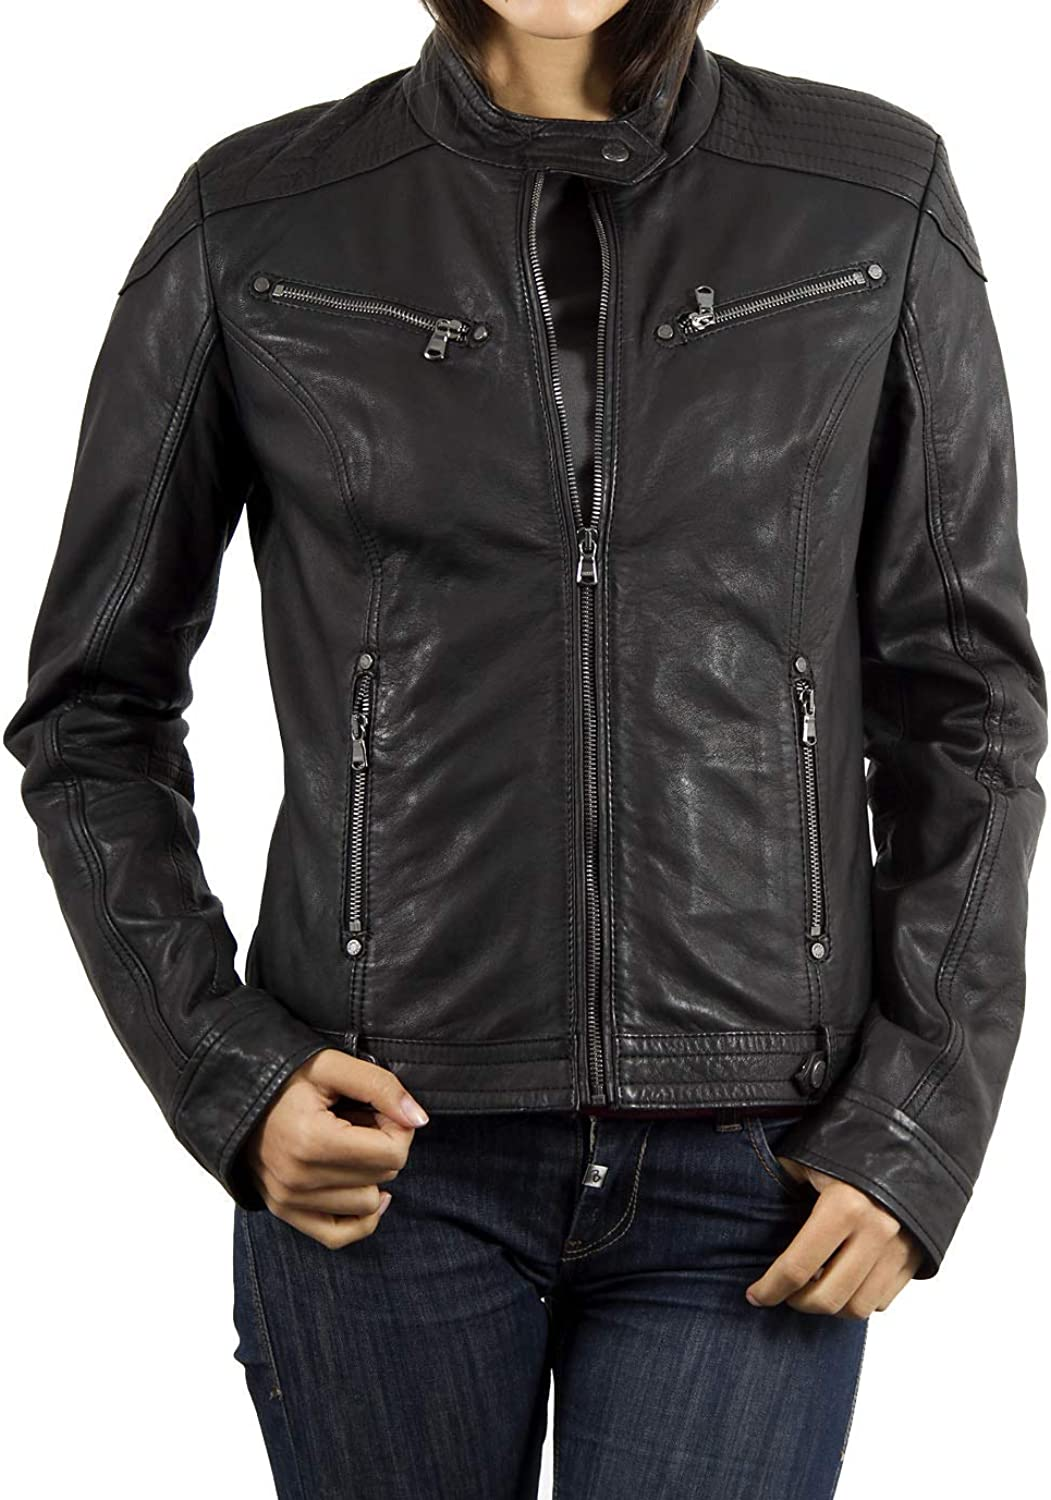 Women's Stylish Lambskin Genuine Leather Jacket WJ69